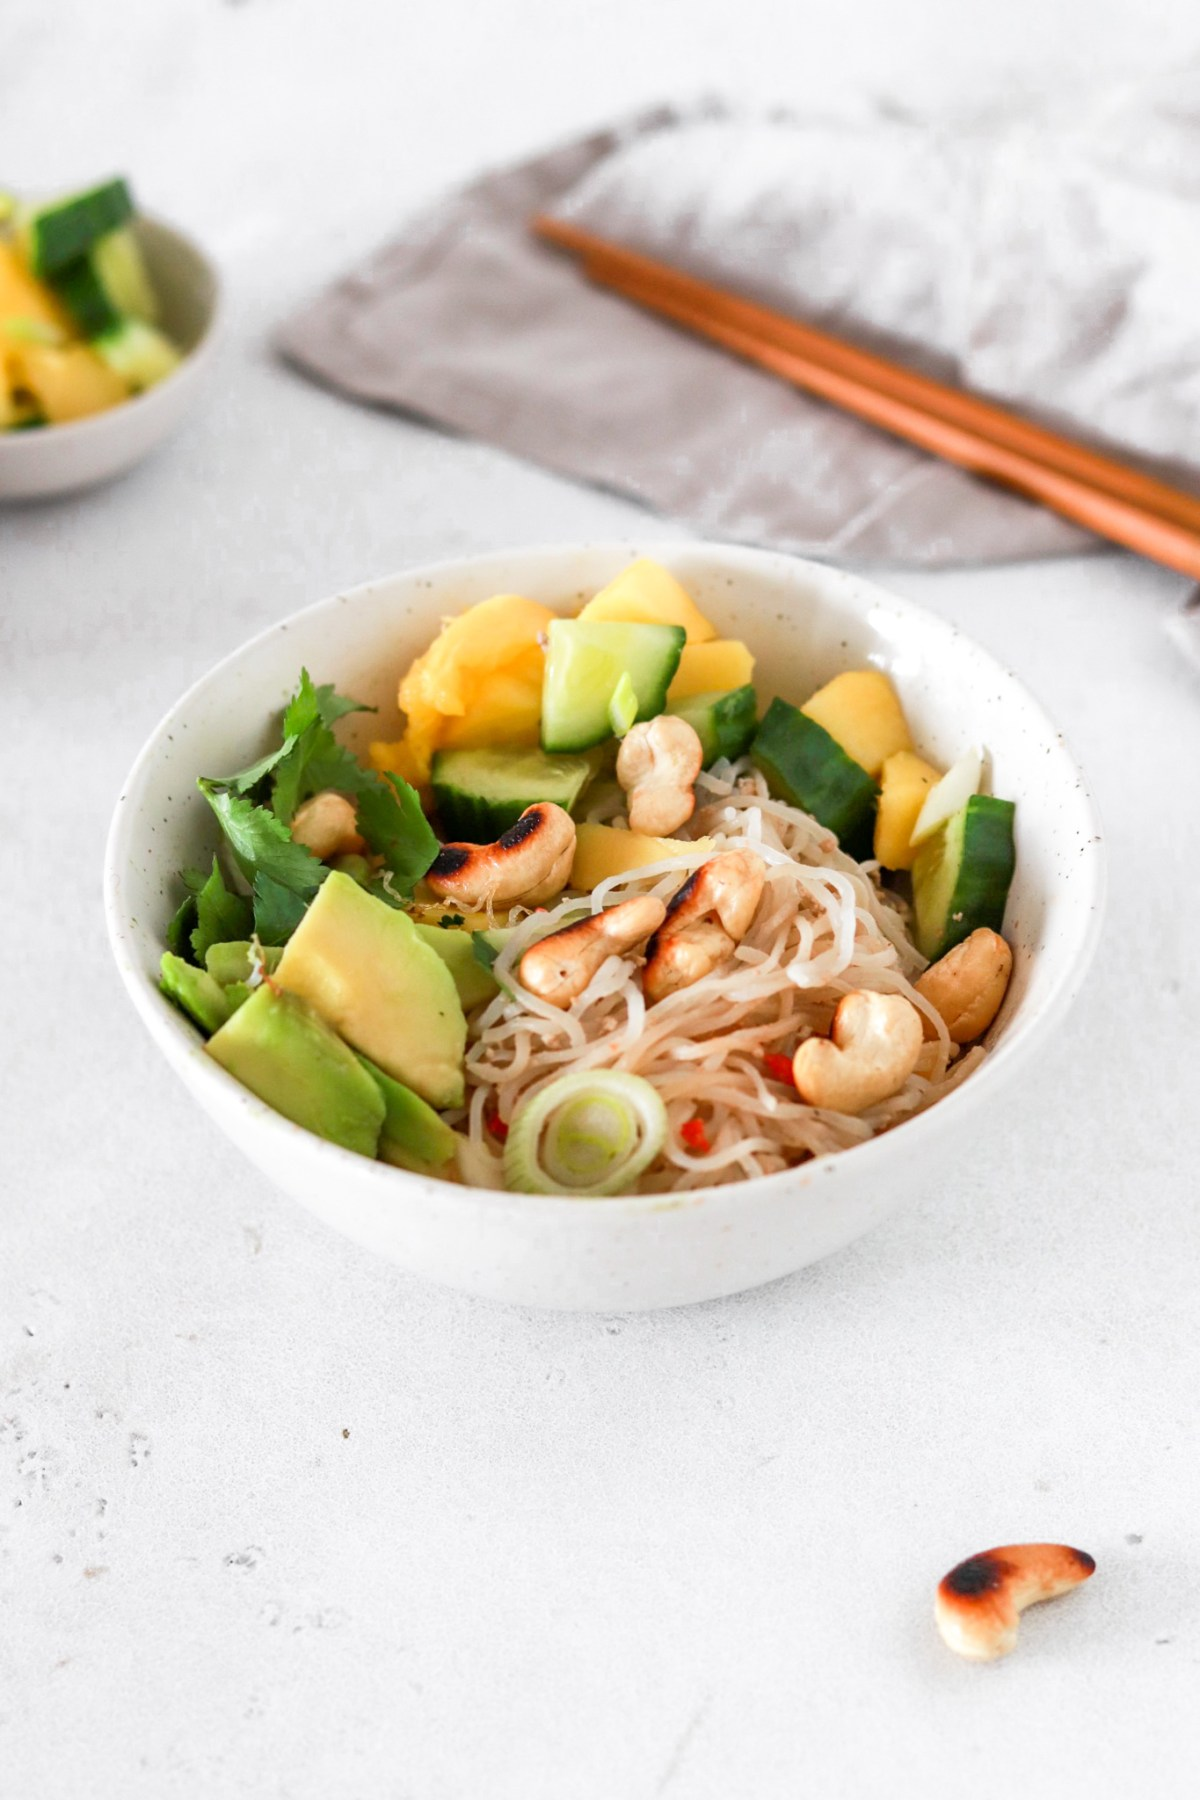 Five Minute Spicy Tahini Shirataki Noodles (Vegan, Gluten, Grain Free & Low Carb) From Front